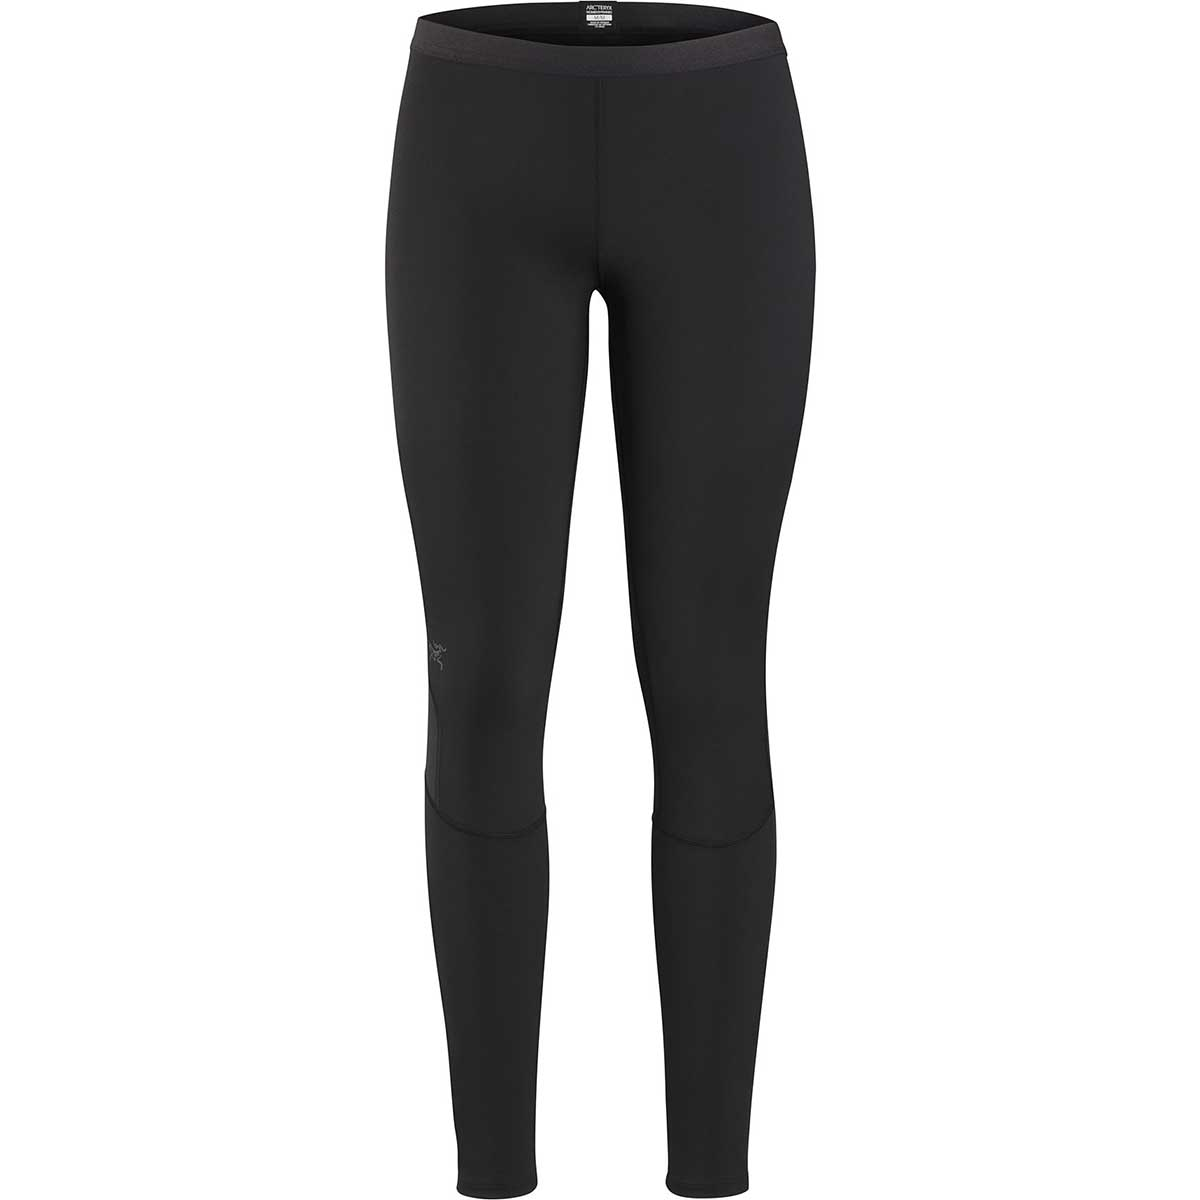 Arcteryx women's Phase AR Bottom in Black front view